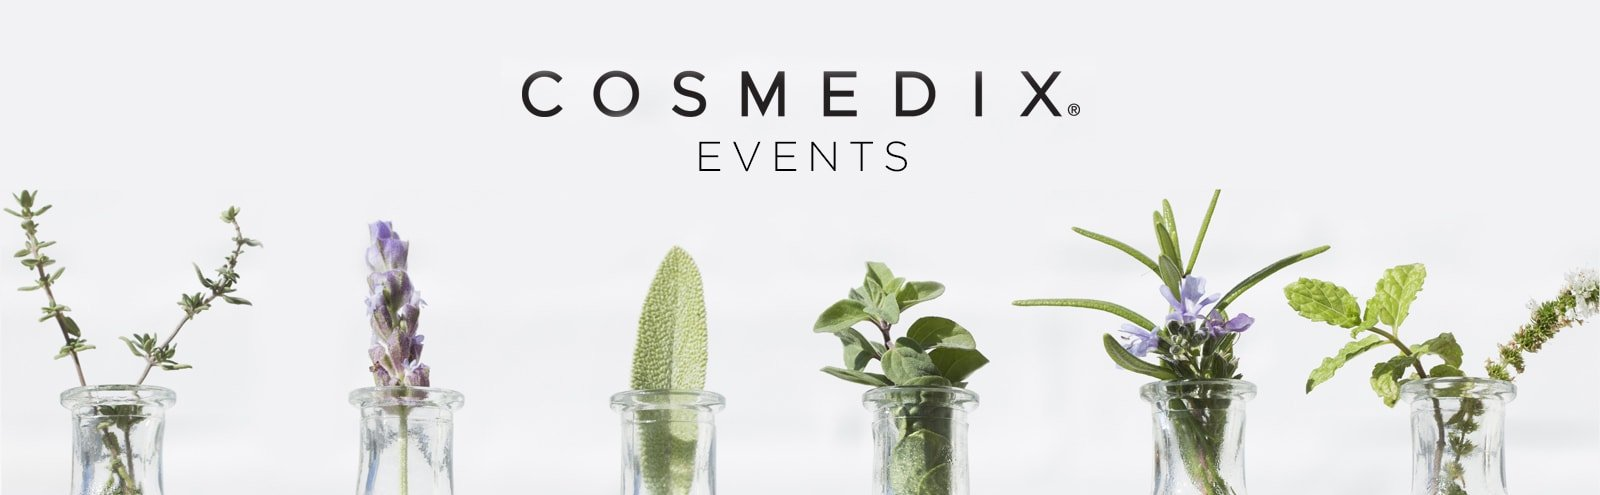 COSMEDIX Events